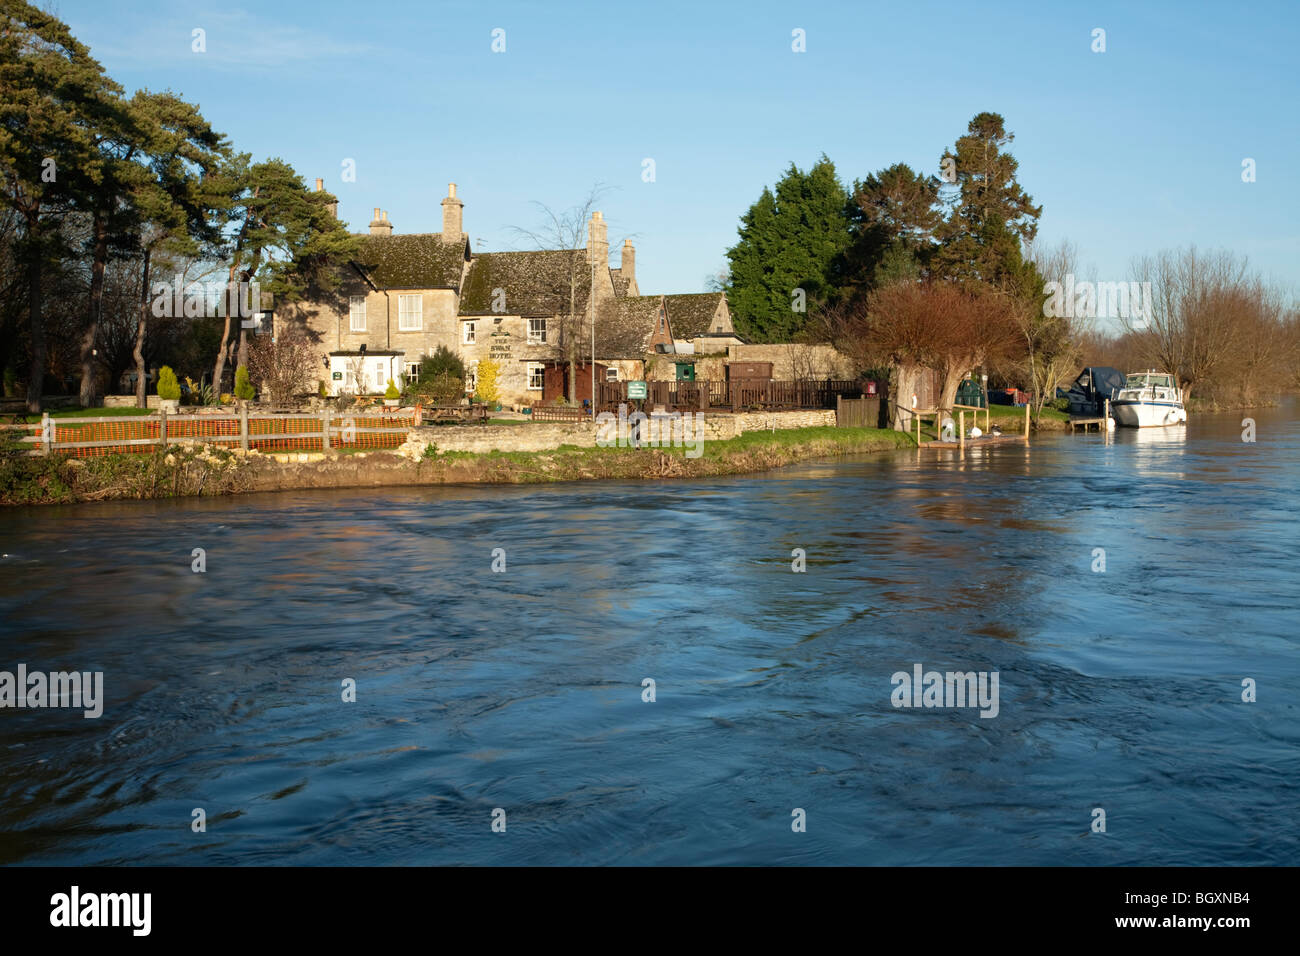 The Swan Hotel on the River Thames at Radcot Bridge, Oxfordshire, Uk - Stock Image